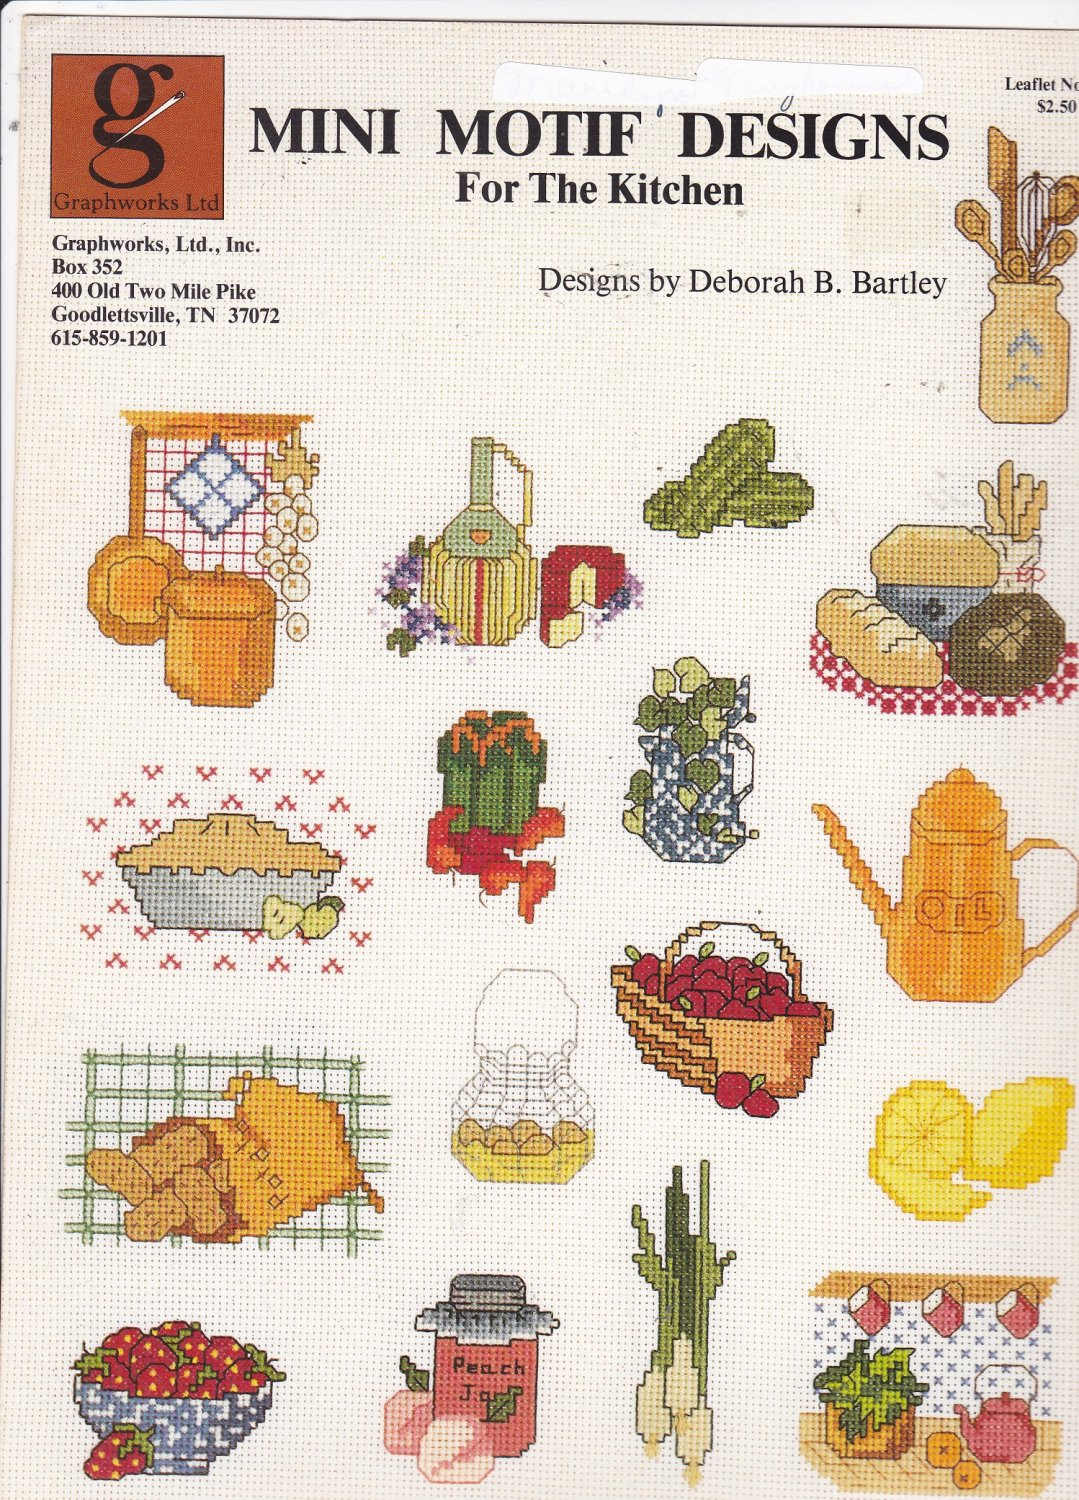 Graphworks Mini Motif Designs for the Kitchen leaflet 22 Counted Cross Stitch